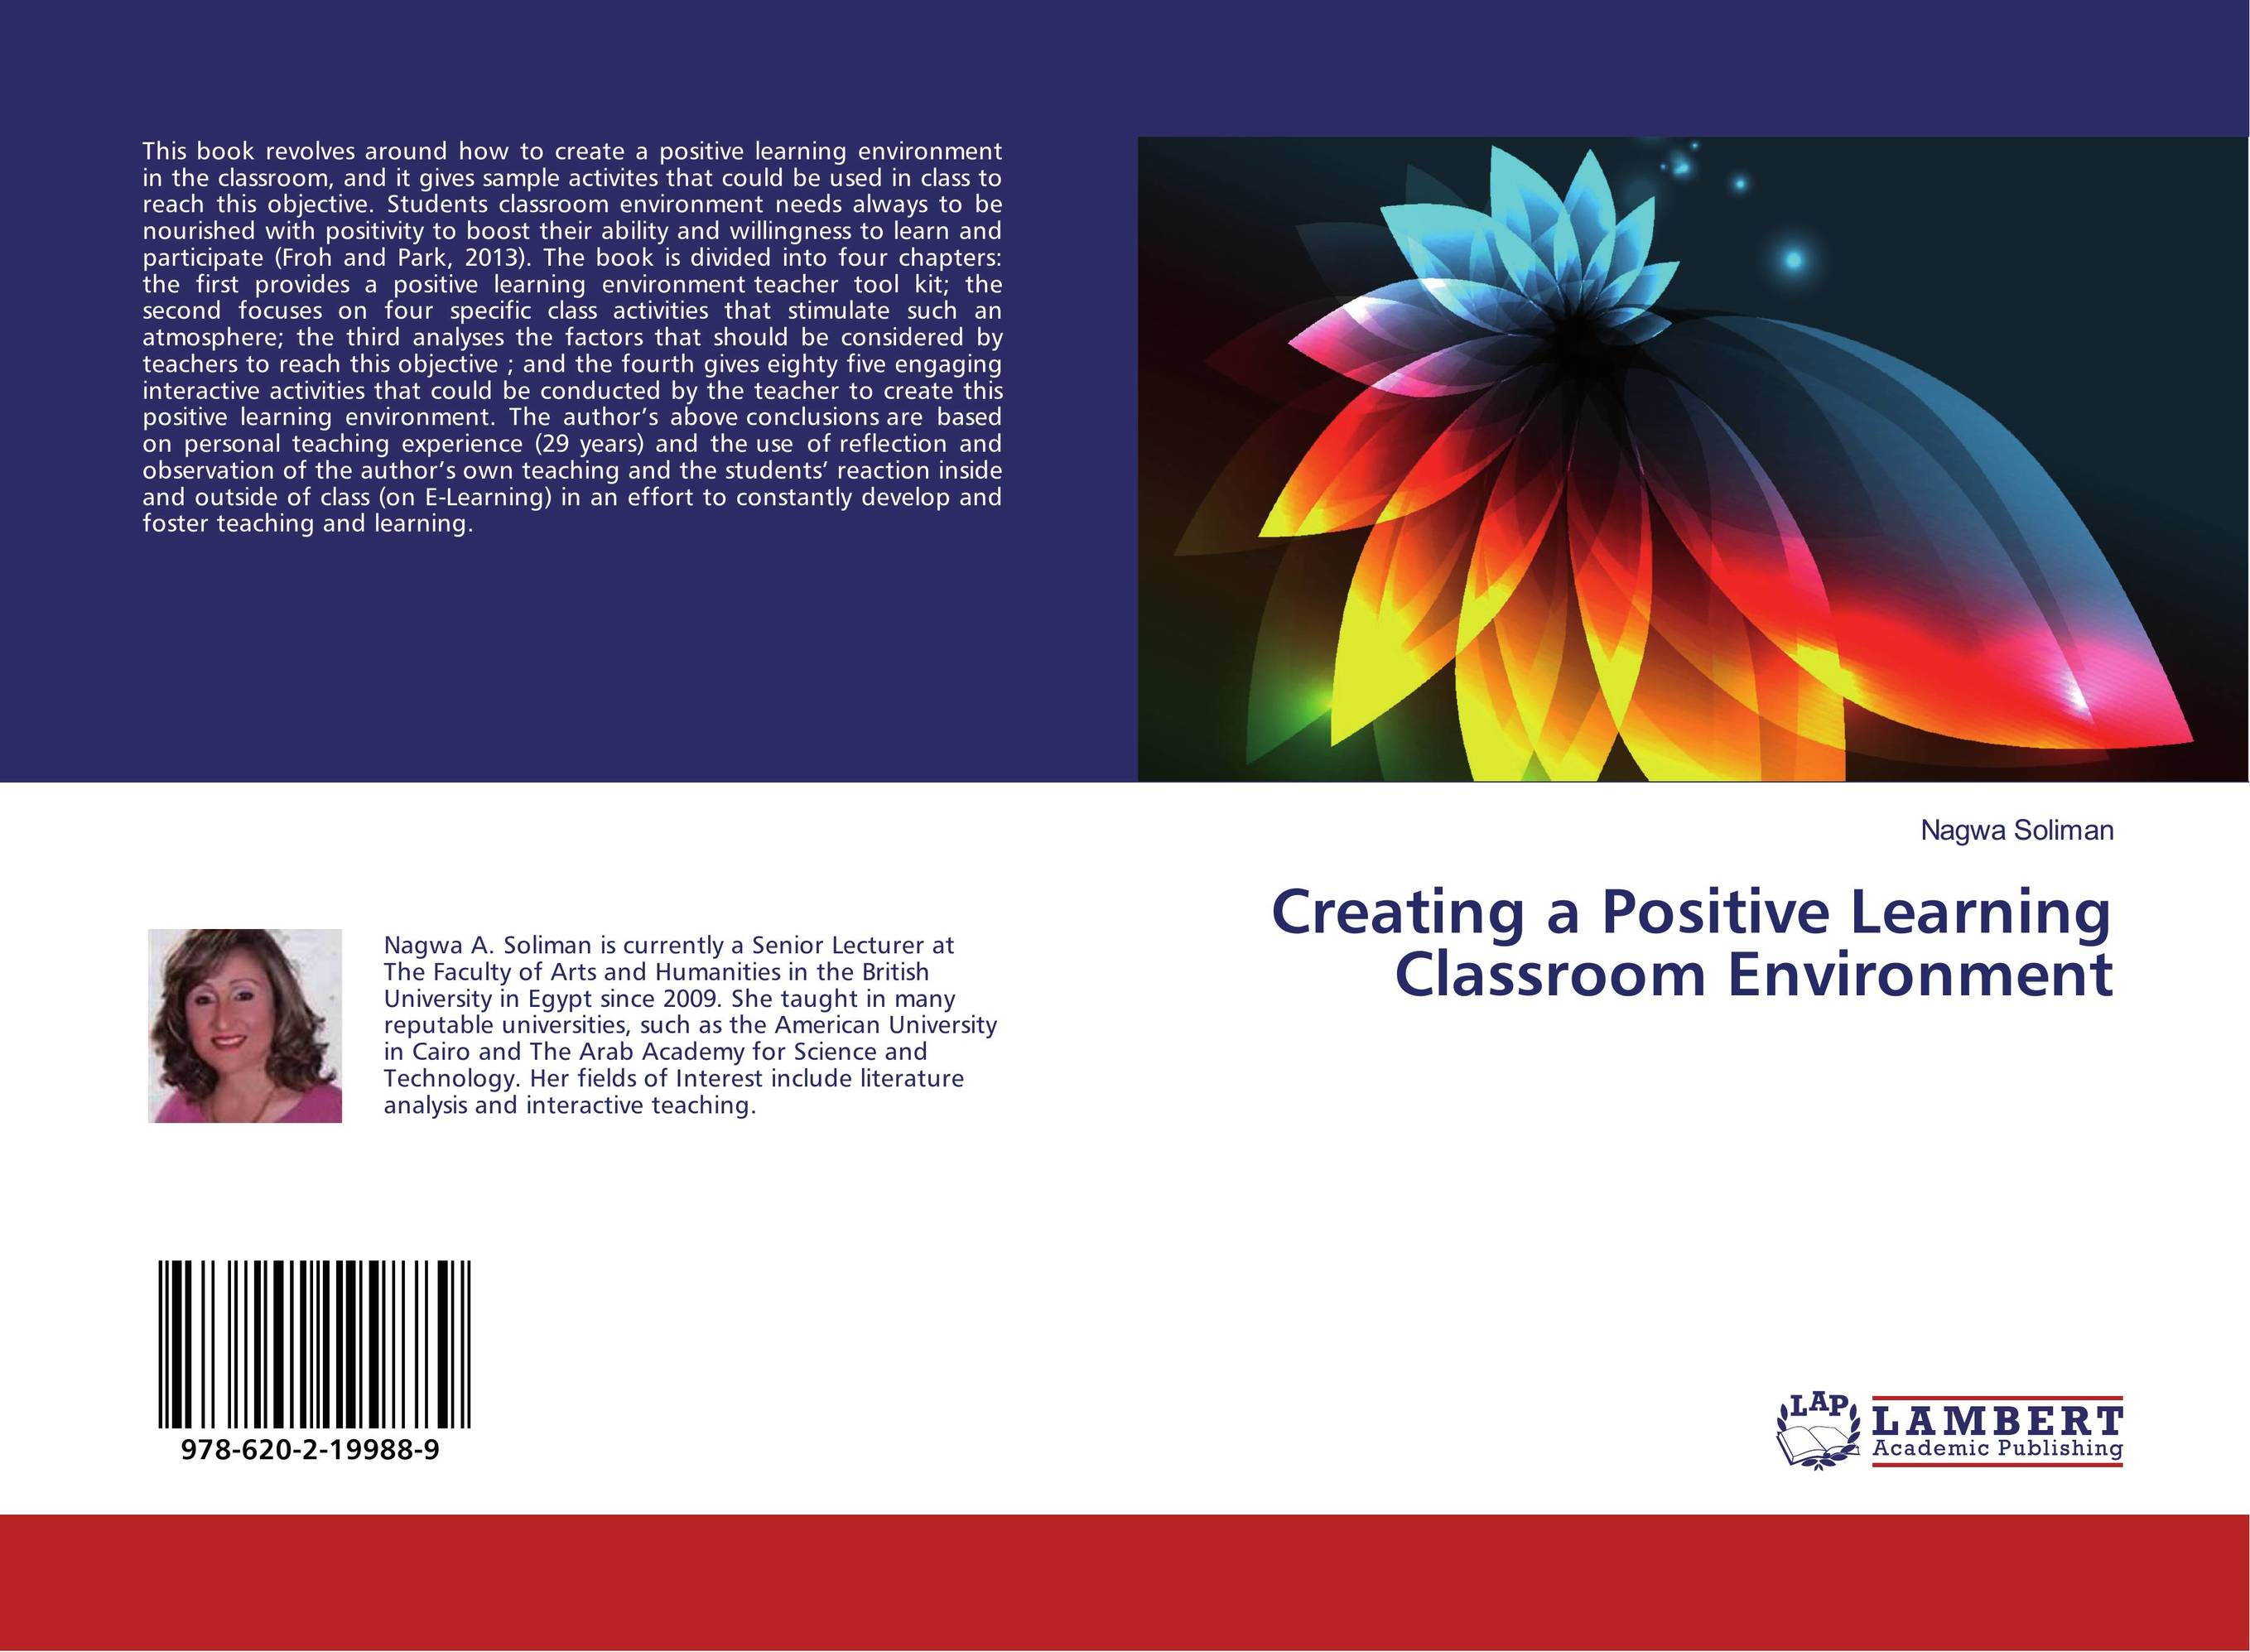 creating an inviting classroom environment essay The other classroom was neat, orderly, yet warm, inviting, comfortable, and user-friendly i agree with the authors that the second classroom was the ideal and the one that is more conducive to student learning.